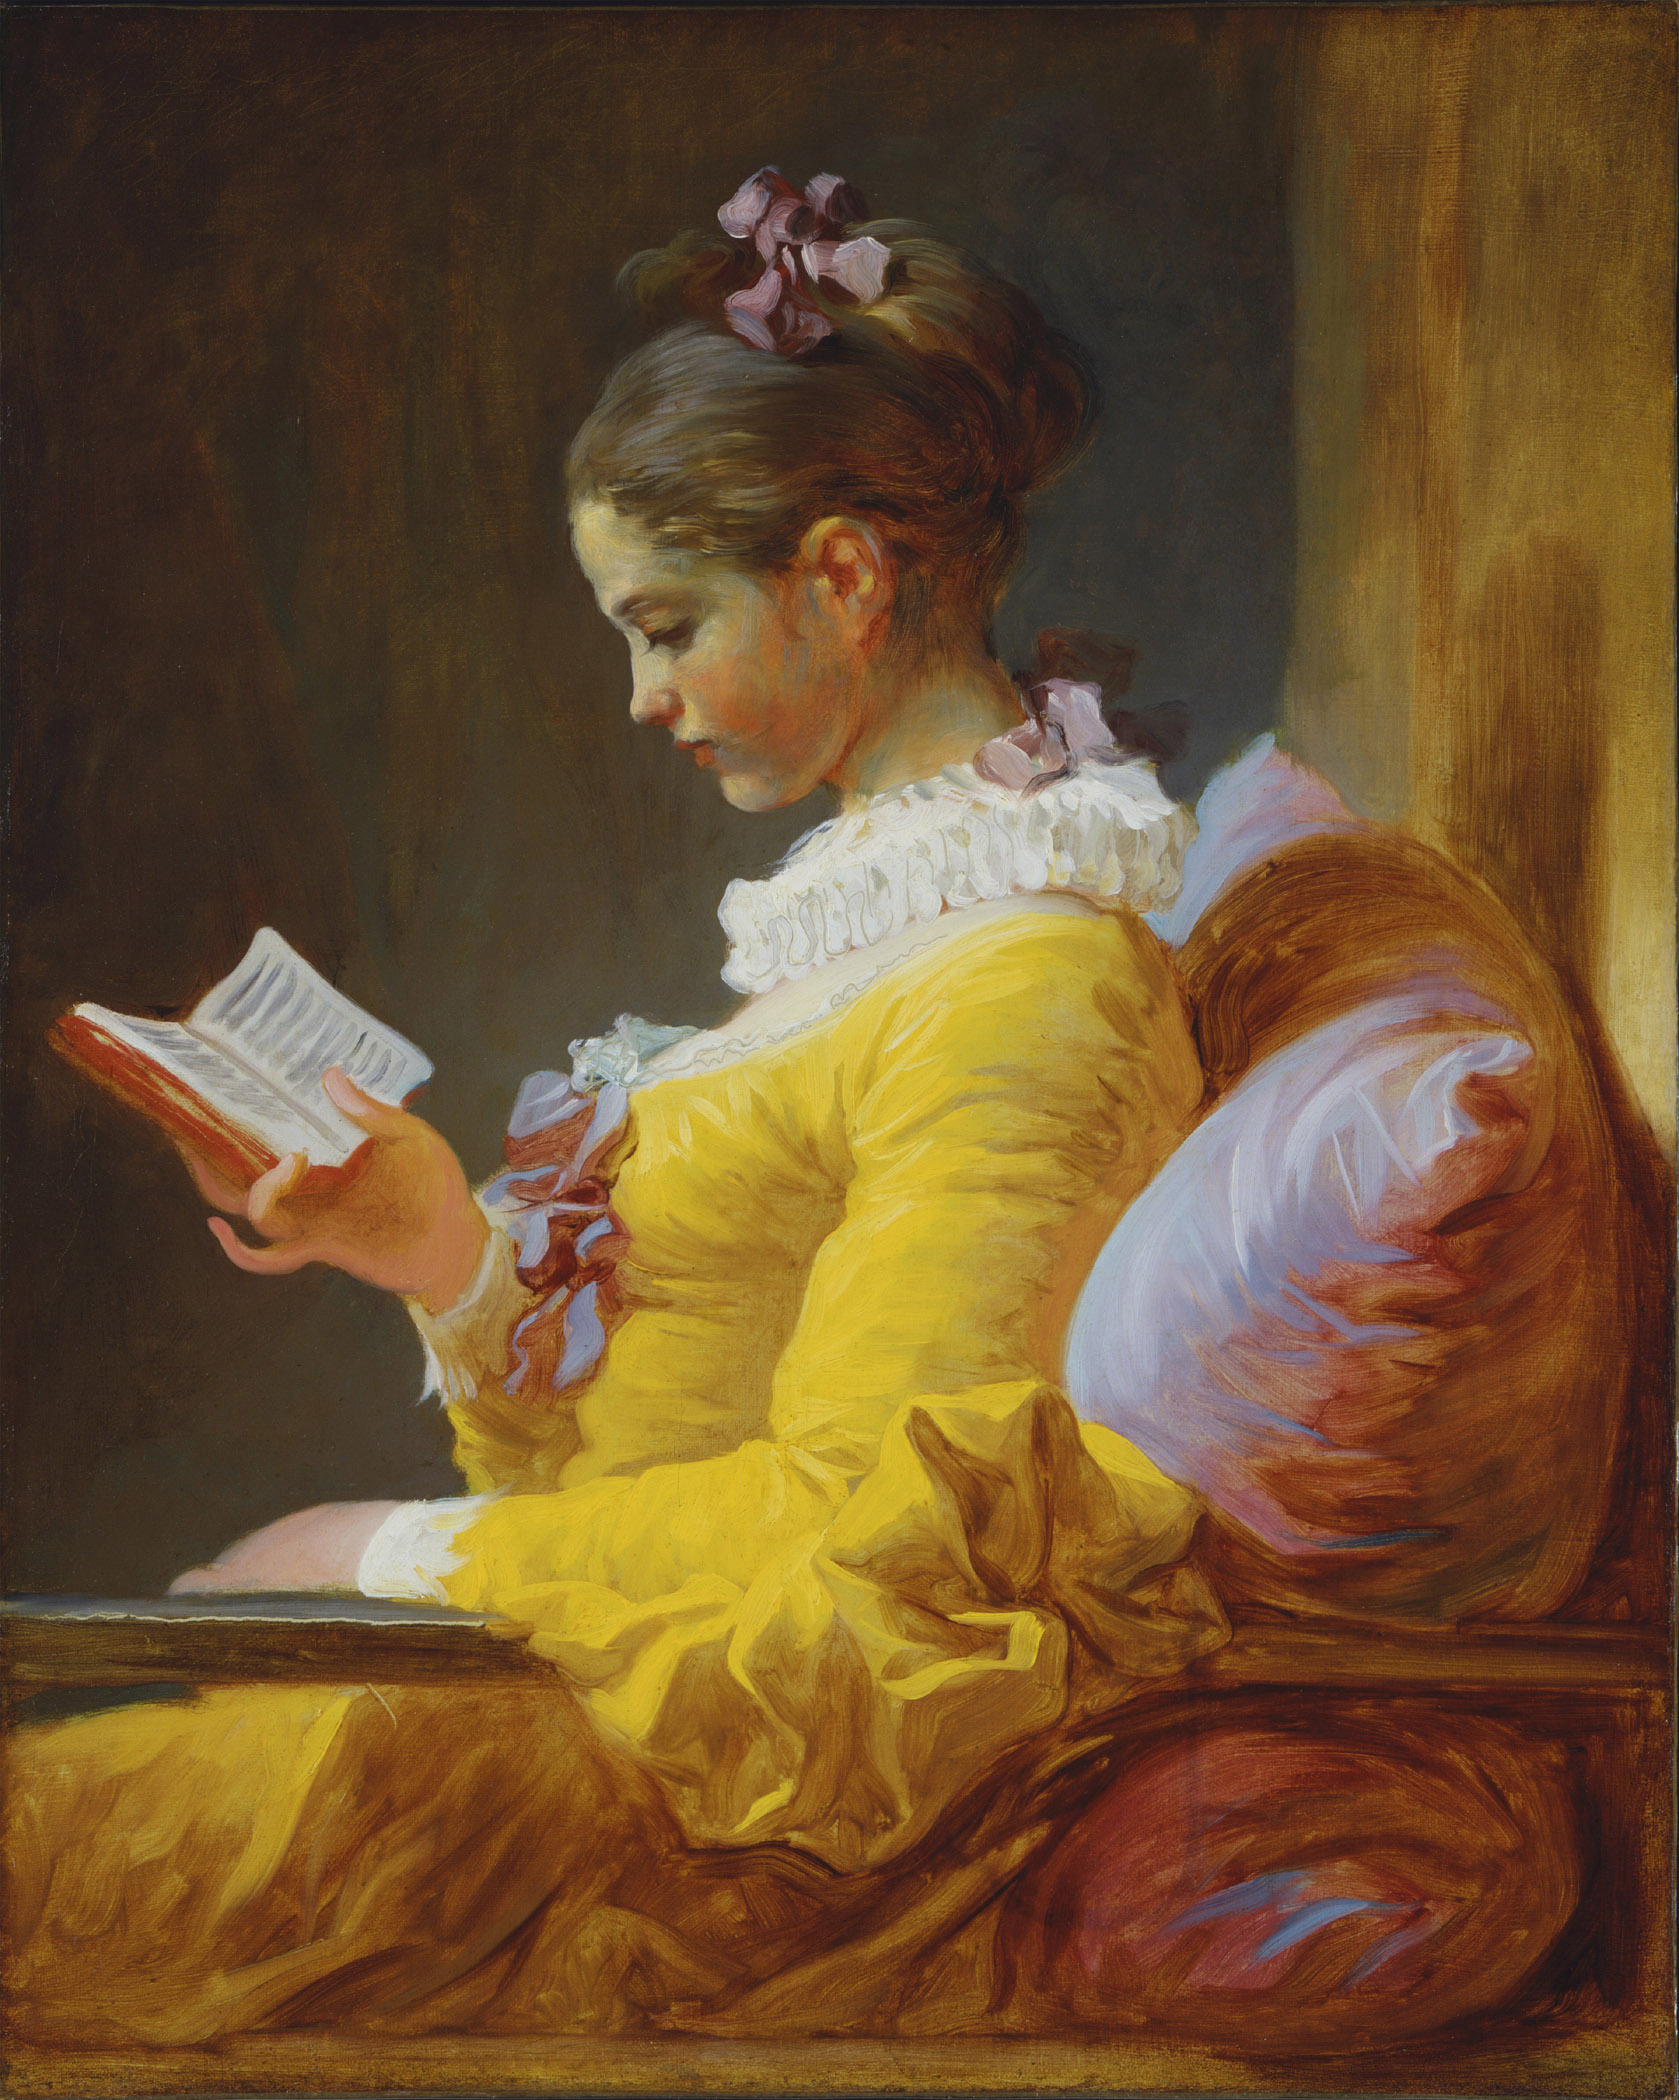 Jean-Honore Fragonard (1732-1806)  A Young Girl Reading  Oil on canvas, c.1776  32 1/4 x 25 1/2 inches (82 x 65 cm)  National Gallery of Art, Washington, DC, USA